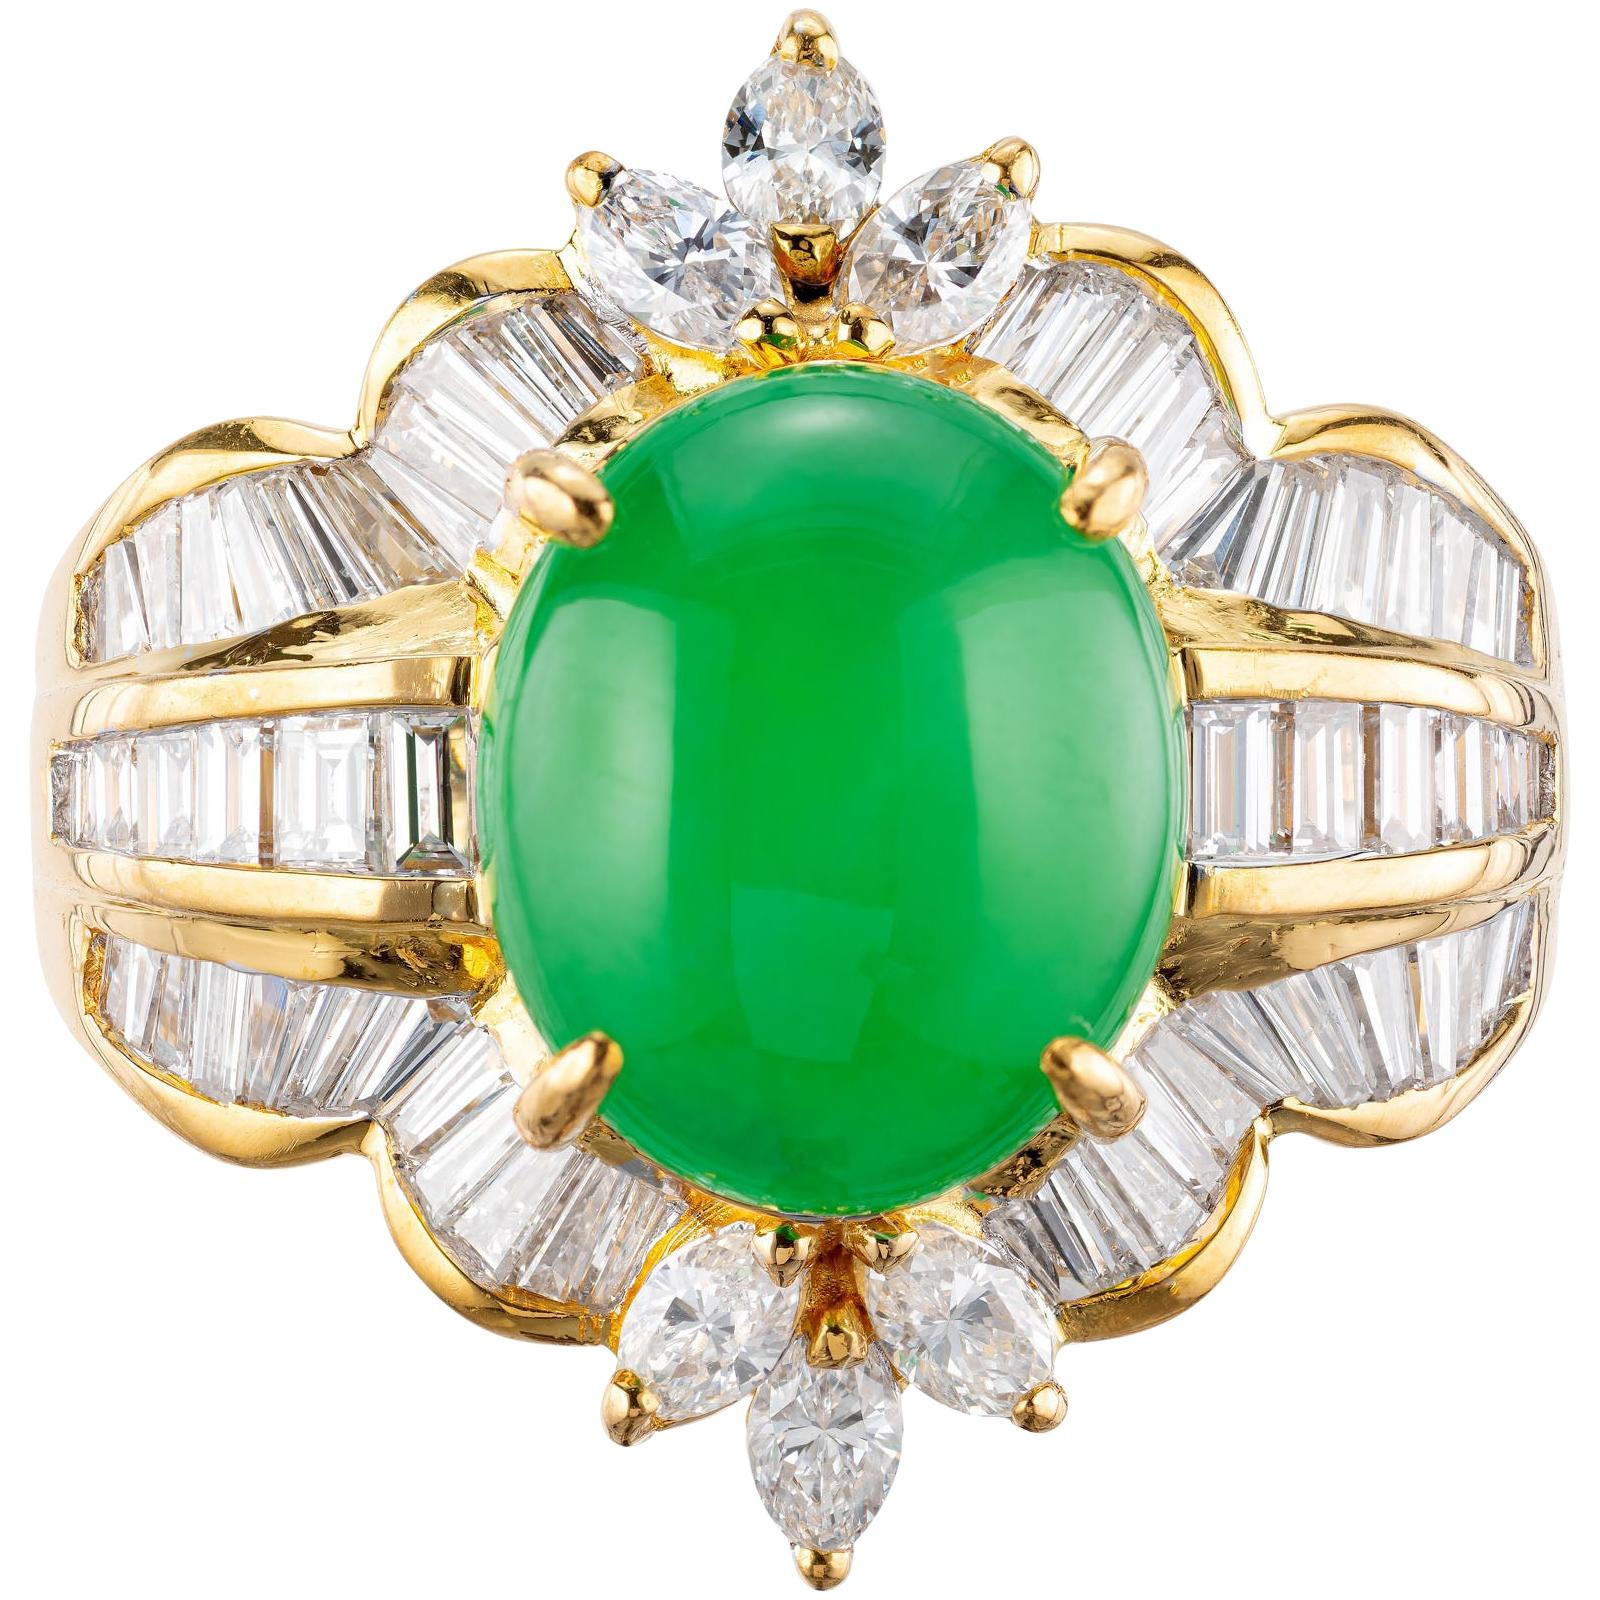 a3352caeaae45 Antique Jade Cocktail Rings - 157 For Sale at 1stdibs